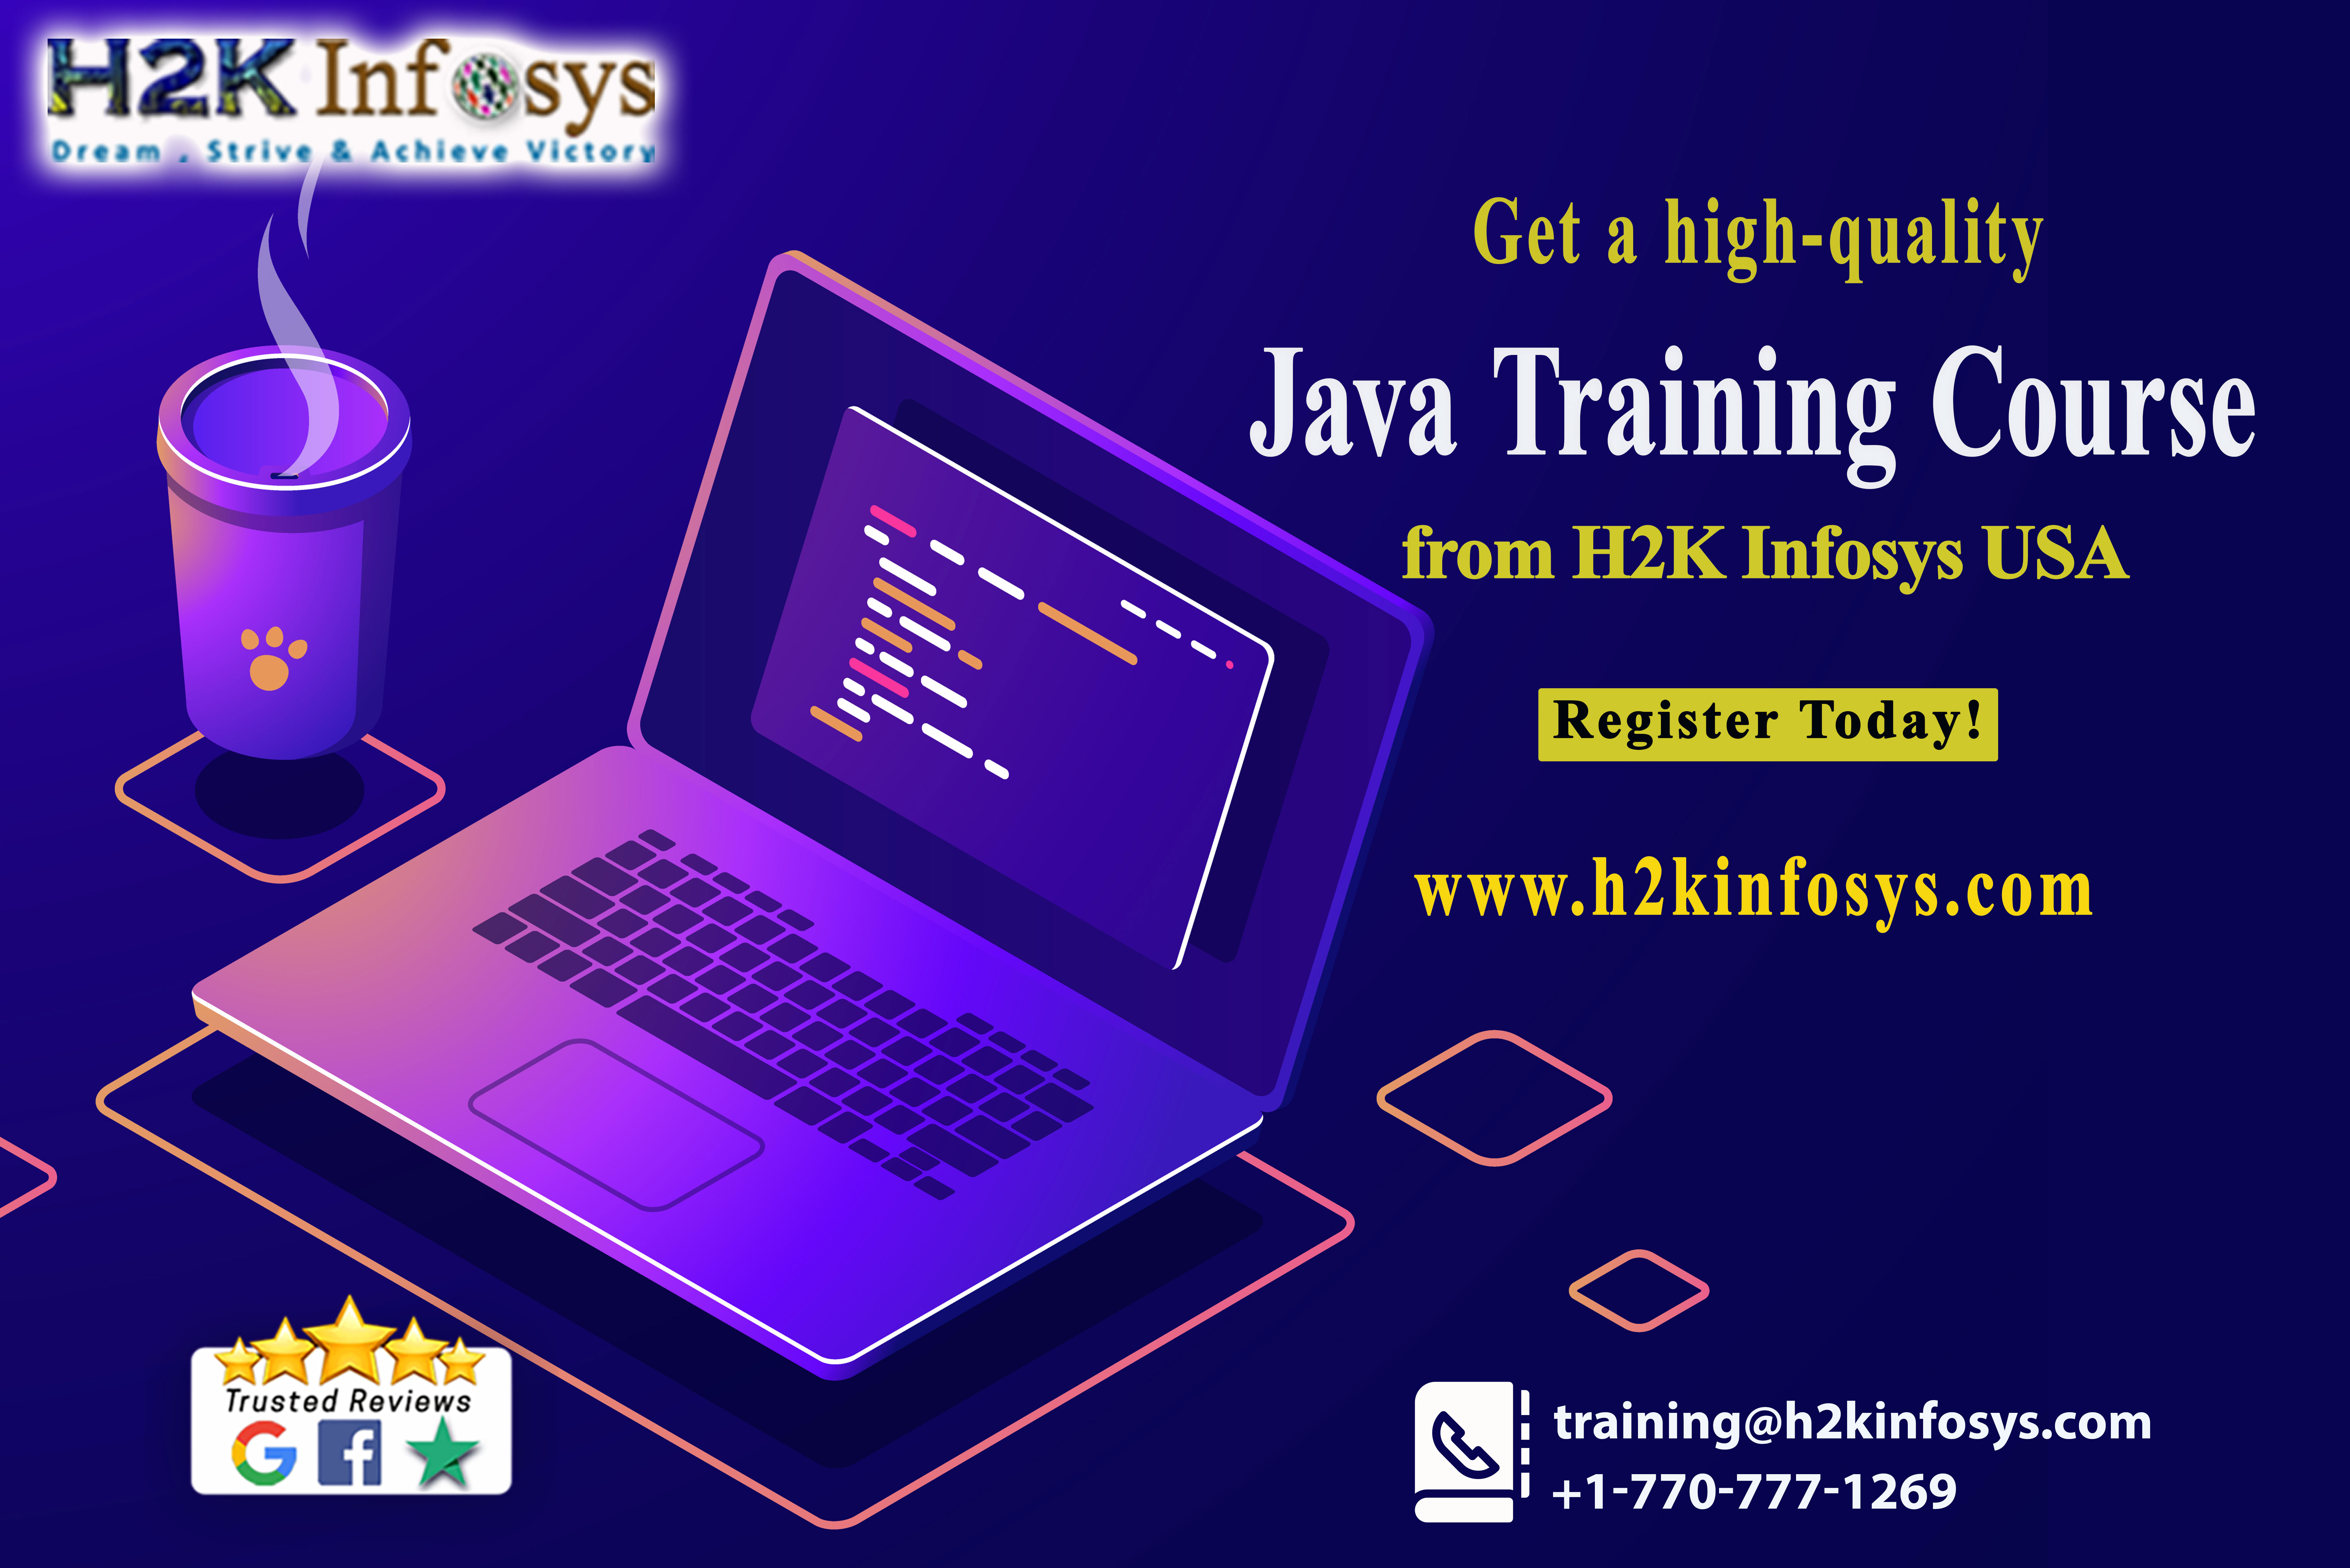 Get a high-quality Java Training Course from H2K Infosys USA